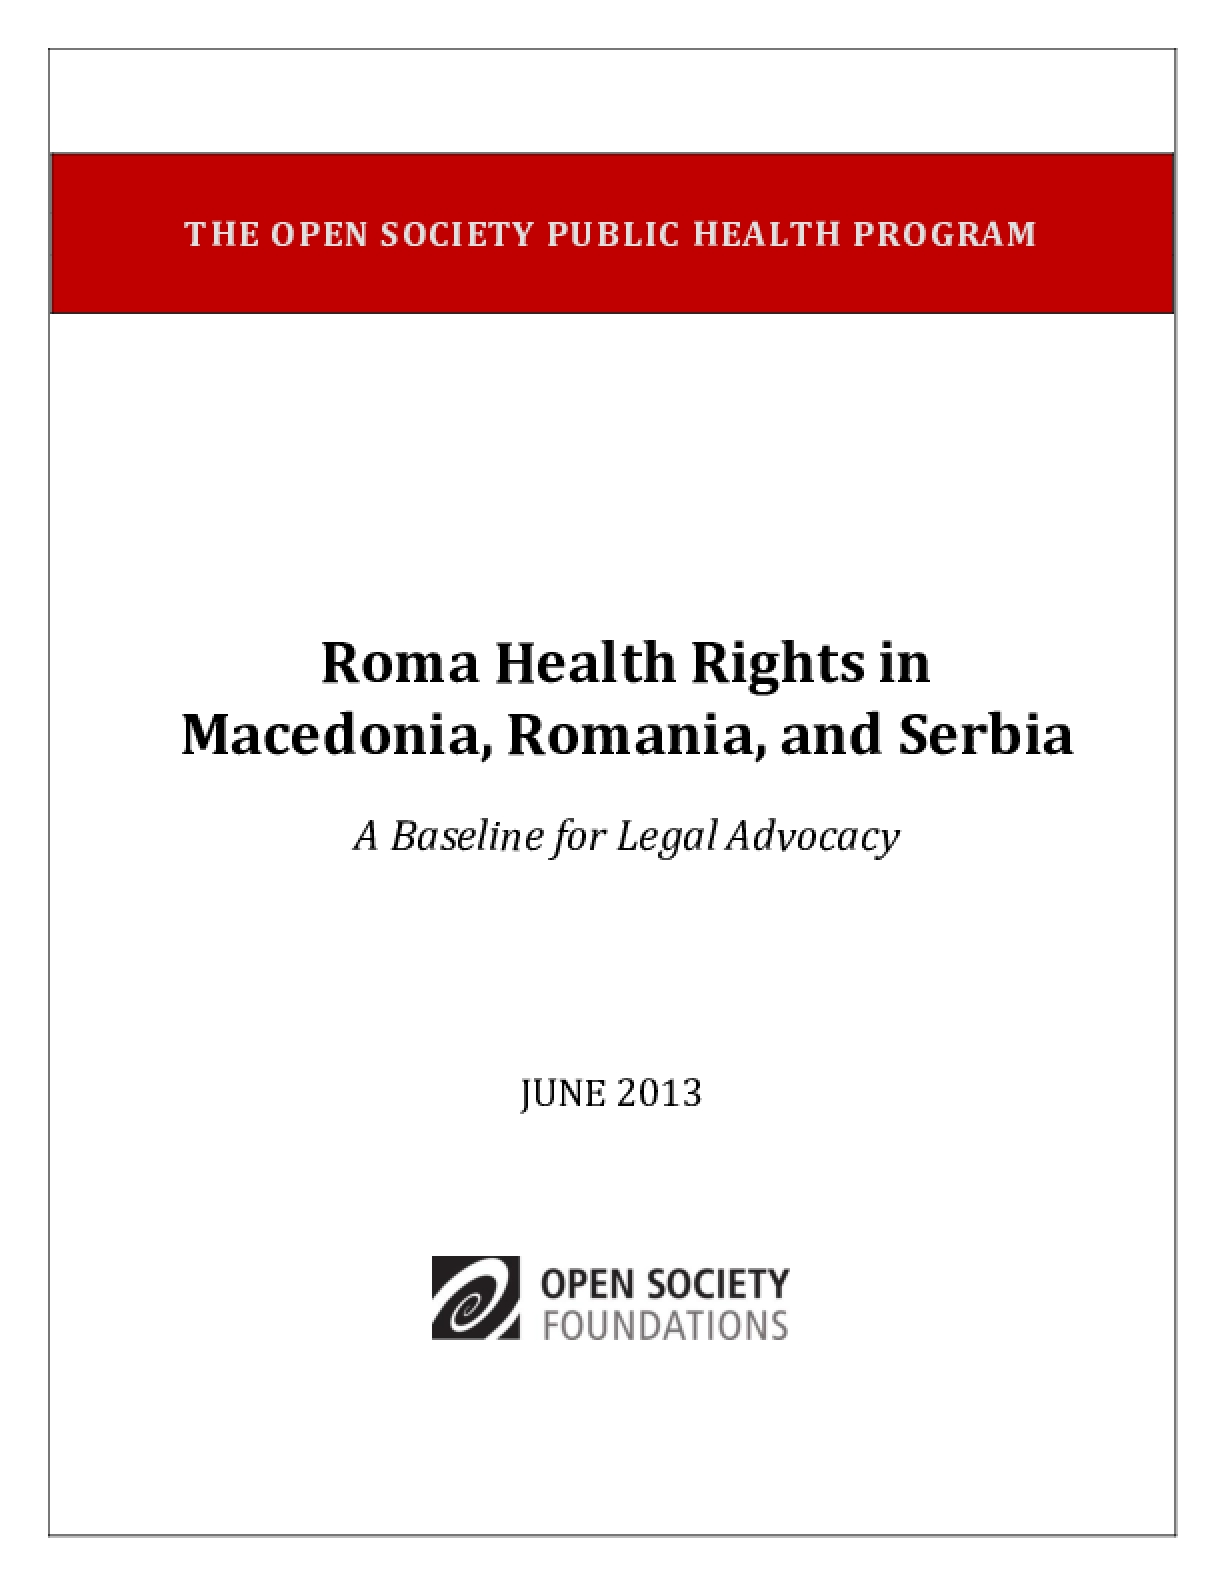 Roma Health Rights in Macedonia, Romania, and Serbia: A Baseline for Legal Advocacy